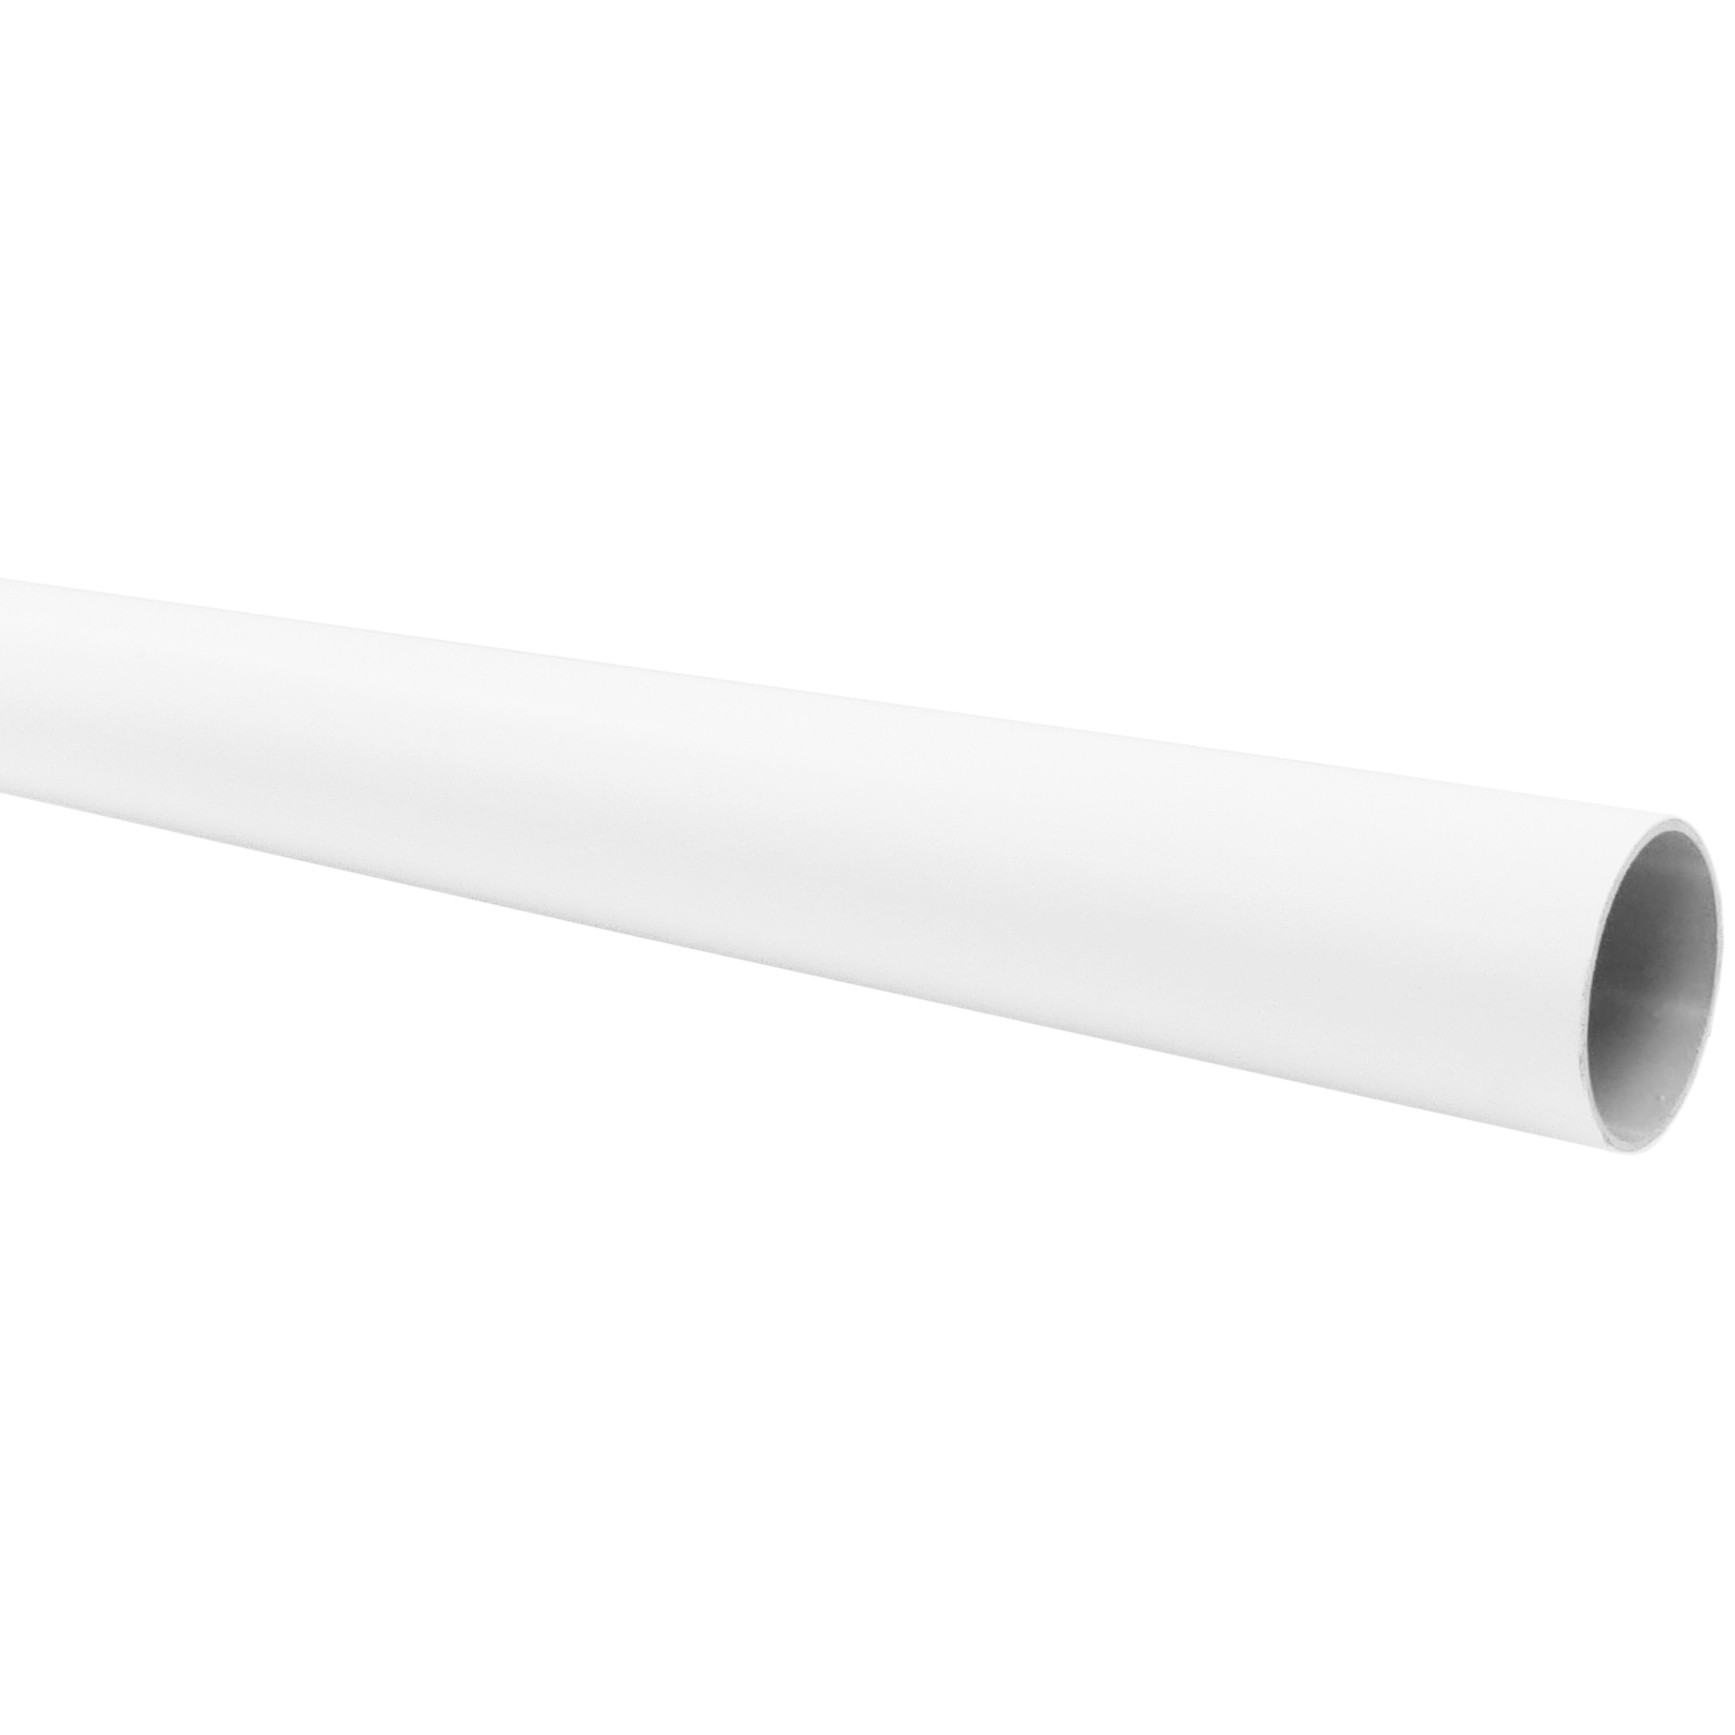 Freeflow 68mm Round Down Pipe - White, 5.5 metre